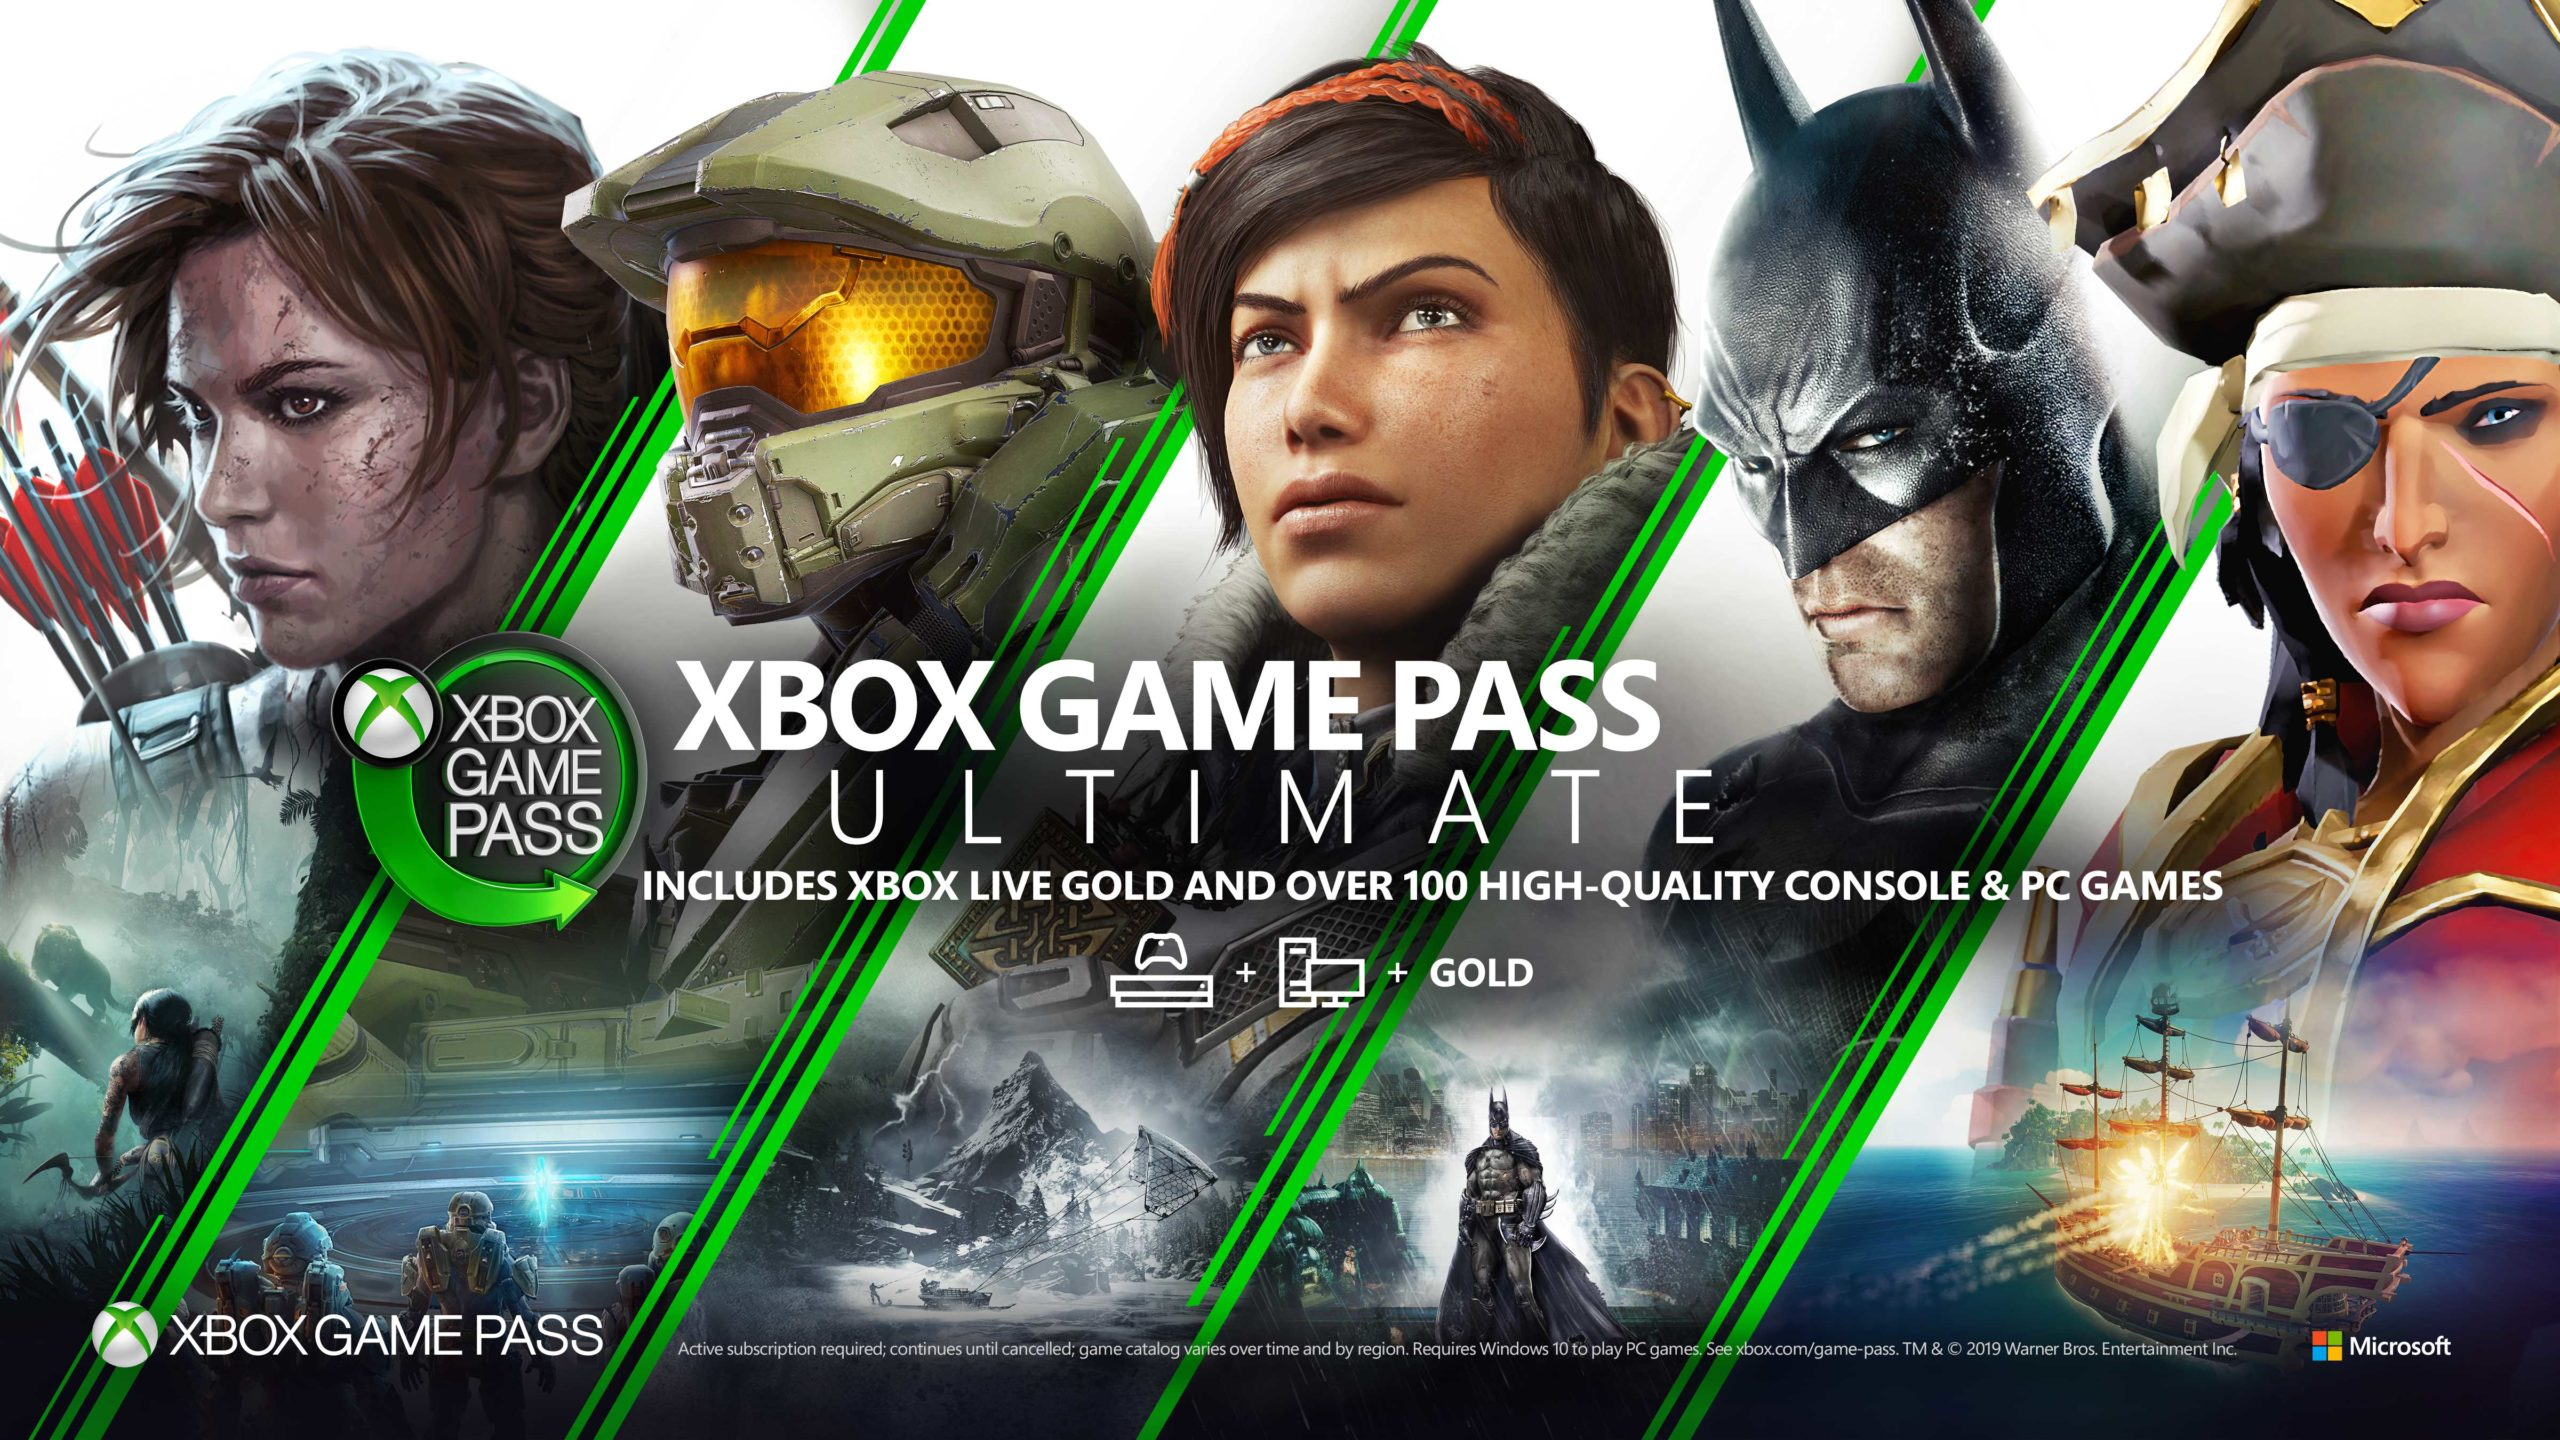 Xbox Game Pass Graphic